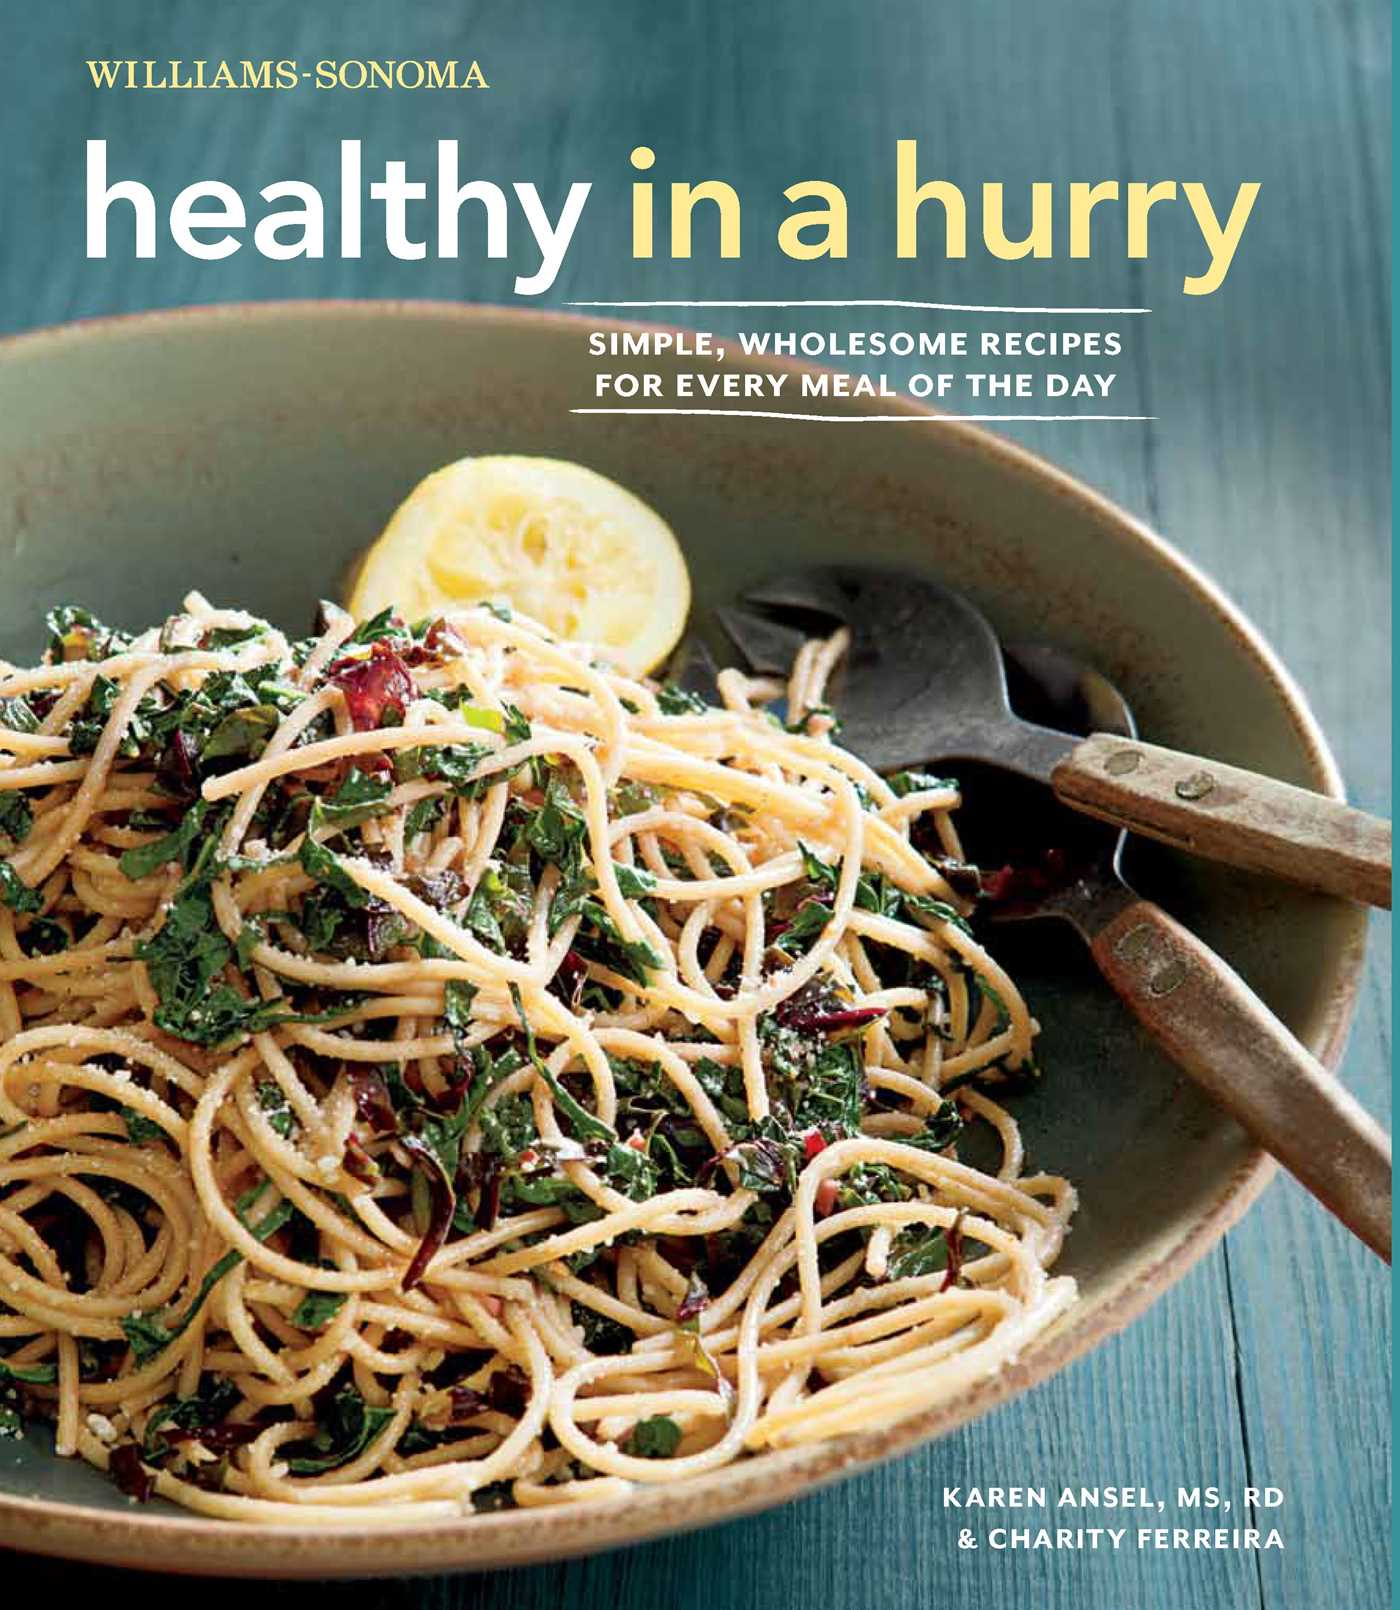 Healthy-in-a-hurry-(williams-sonoma)-9781616282134_hr